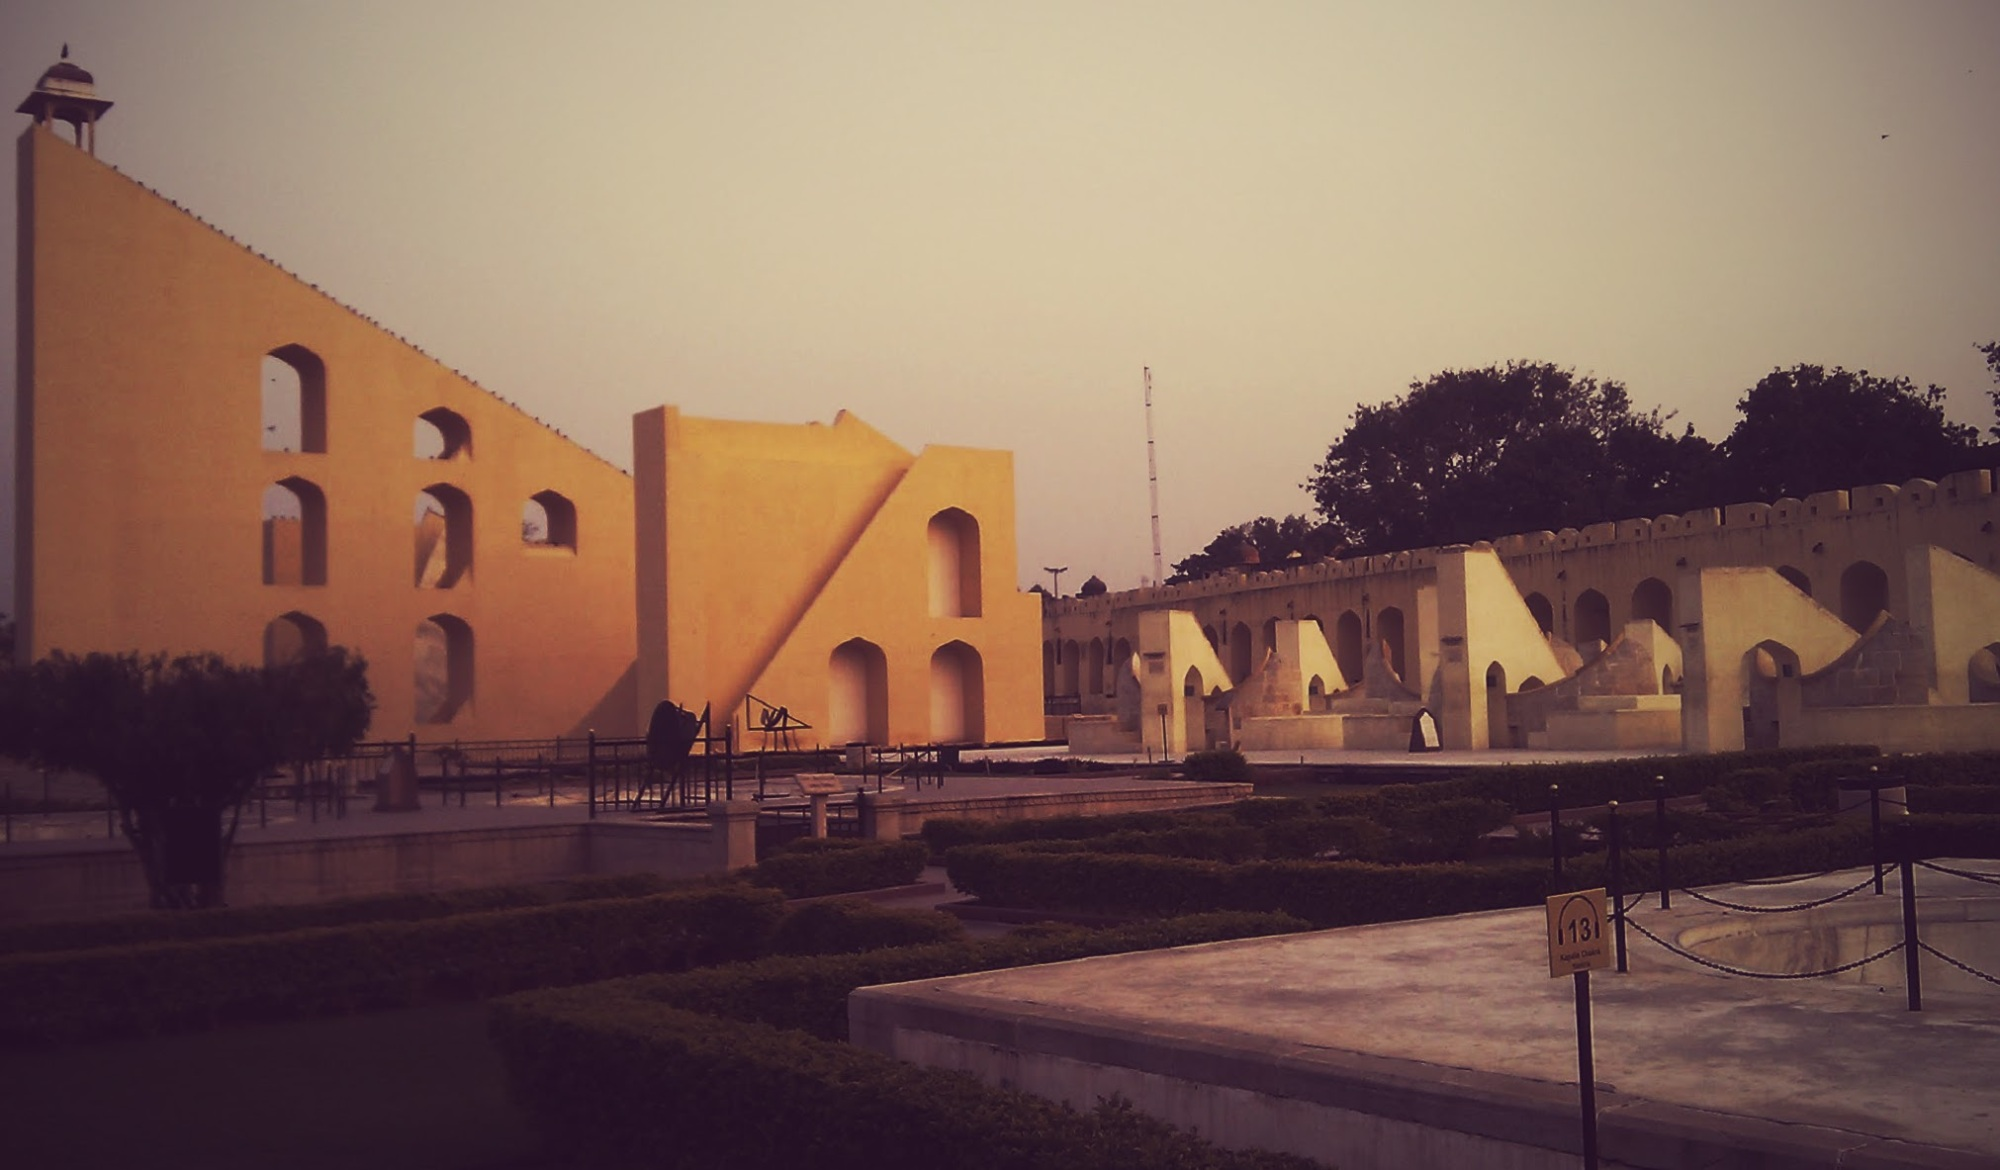 The giant sundial, also know as the Samrat Yantra, in Jantar Mantar complex in Jaipur. Those specks along the sloping edge of the sundial are pigeons - all dutifully lined up as twilight approaches. (Dec. 2011)